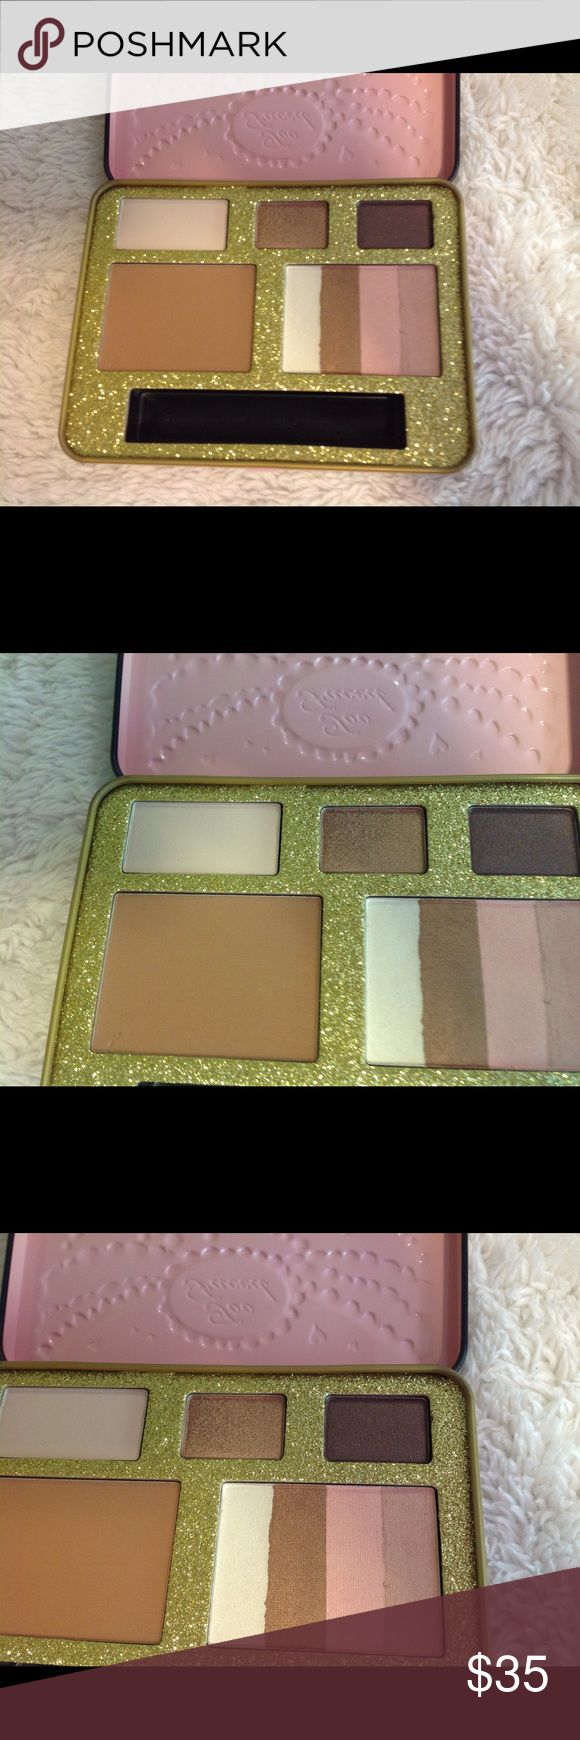 Two Faced Beauty Wishes & Sweet Kisses palette Two Faced Beauty Wishes & Sweet Kisses palette from chocolate bar eye shadow collection. White chocolate, creme brûlée and haute chocolate. Chocolate soleil bronzer and snow bunny bronzer. It's all new but comes without the lip gloss. It comes in pink tin. Two Faced Makeup Eyeshadow